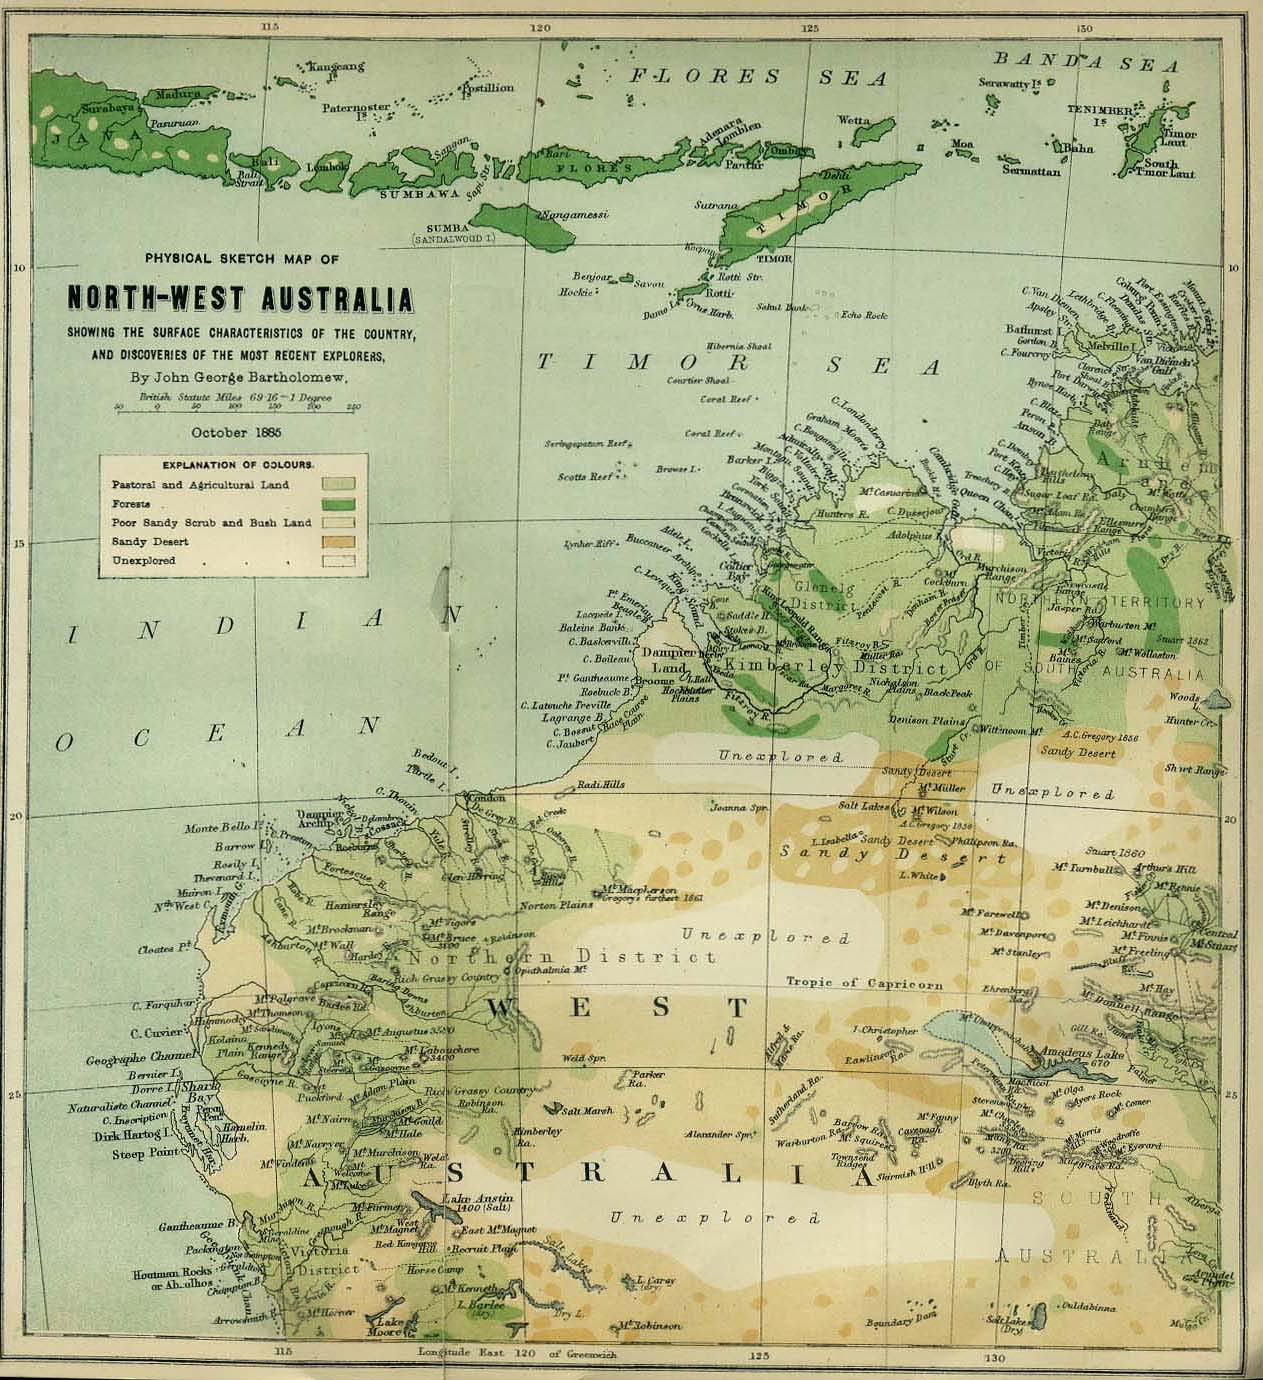 Historical Map Australia Northwest (1885)